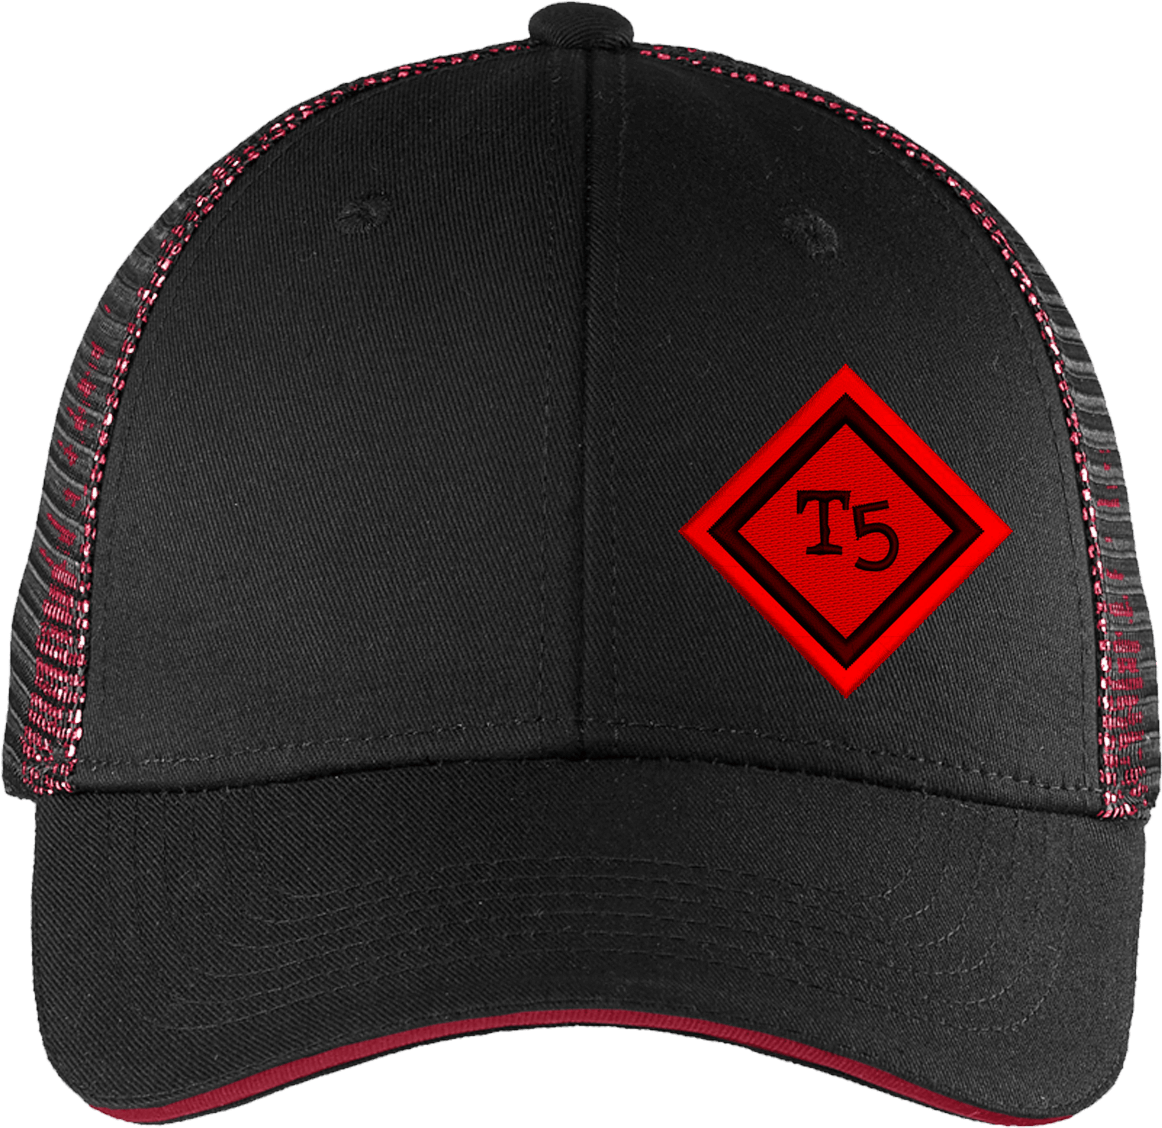 Team 5 diamond hat black / red